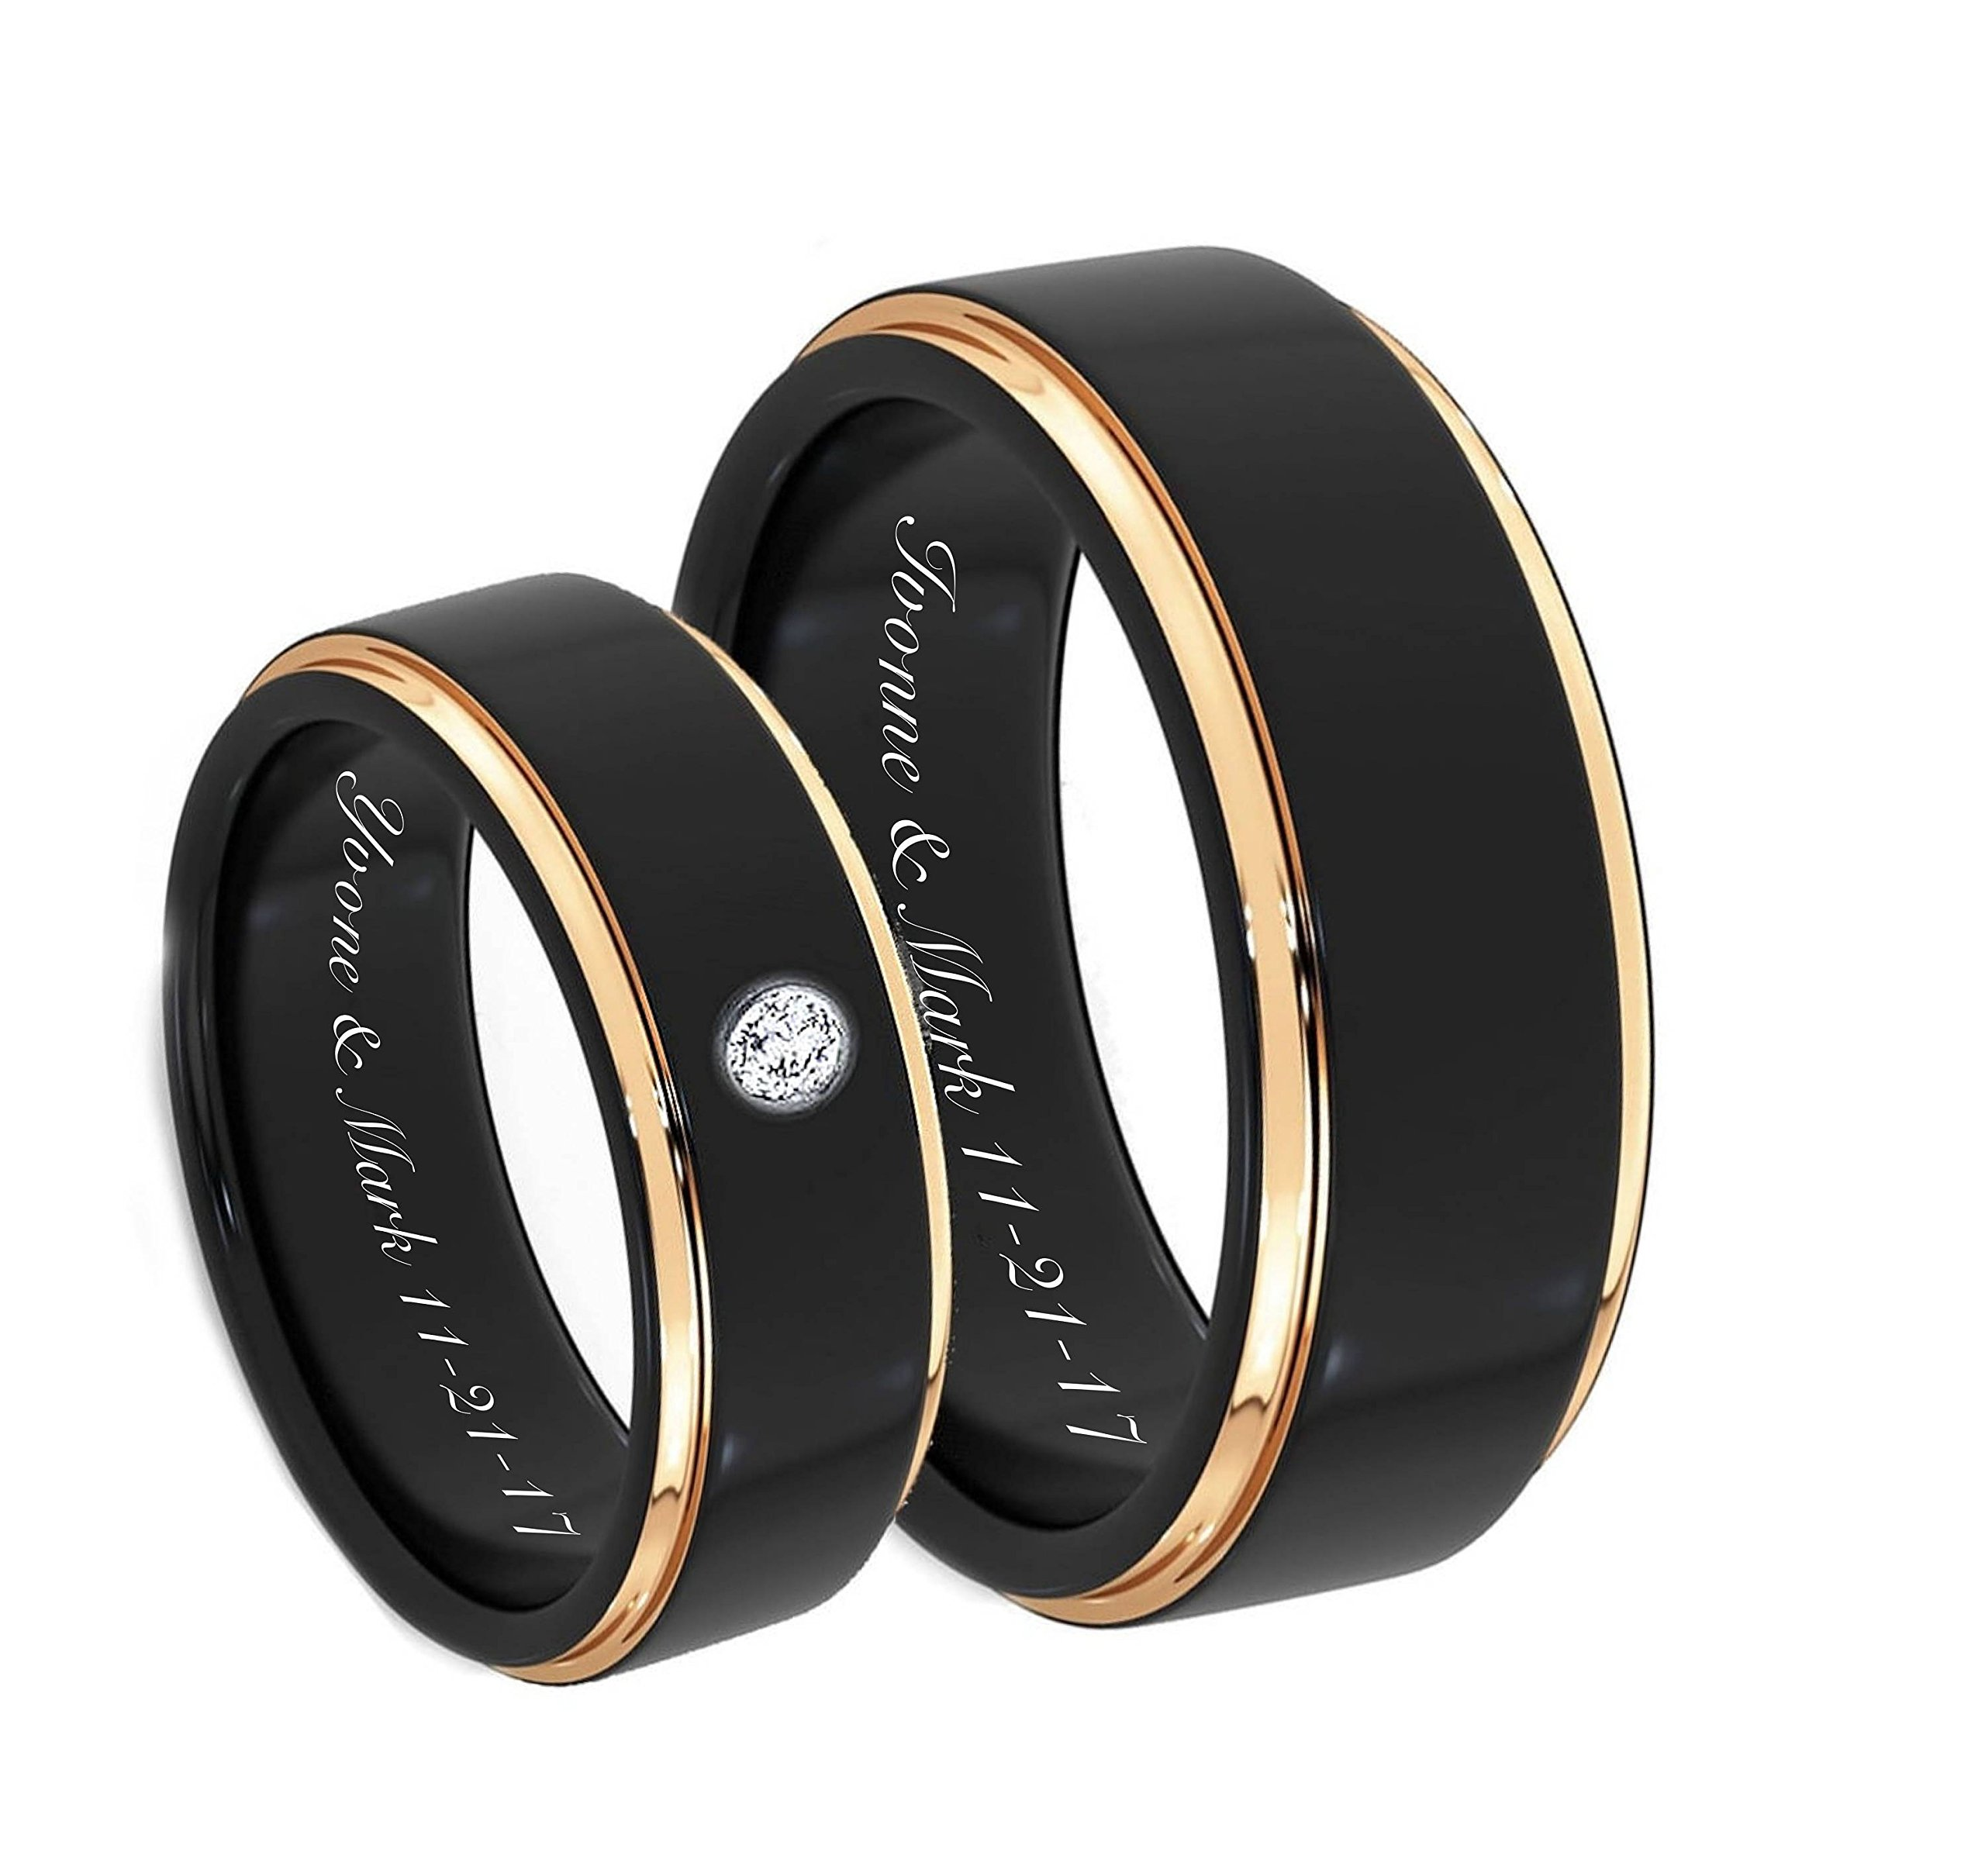 Personalized Stainless Steel Beveled Cut Couple's Ring Set Custom Engraved Free